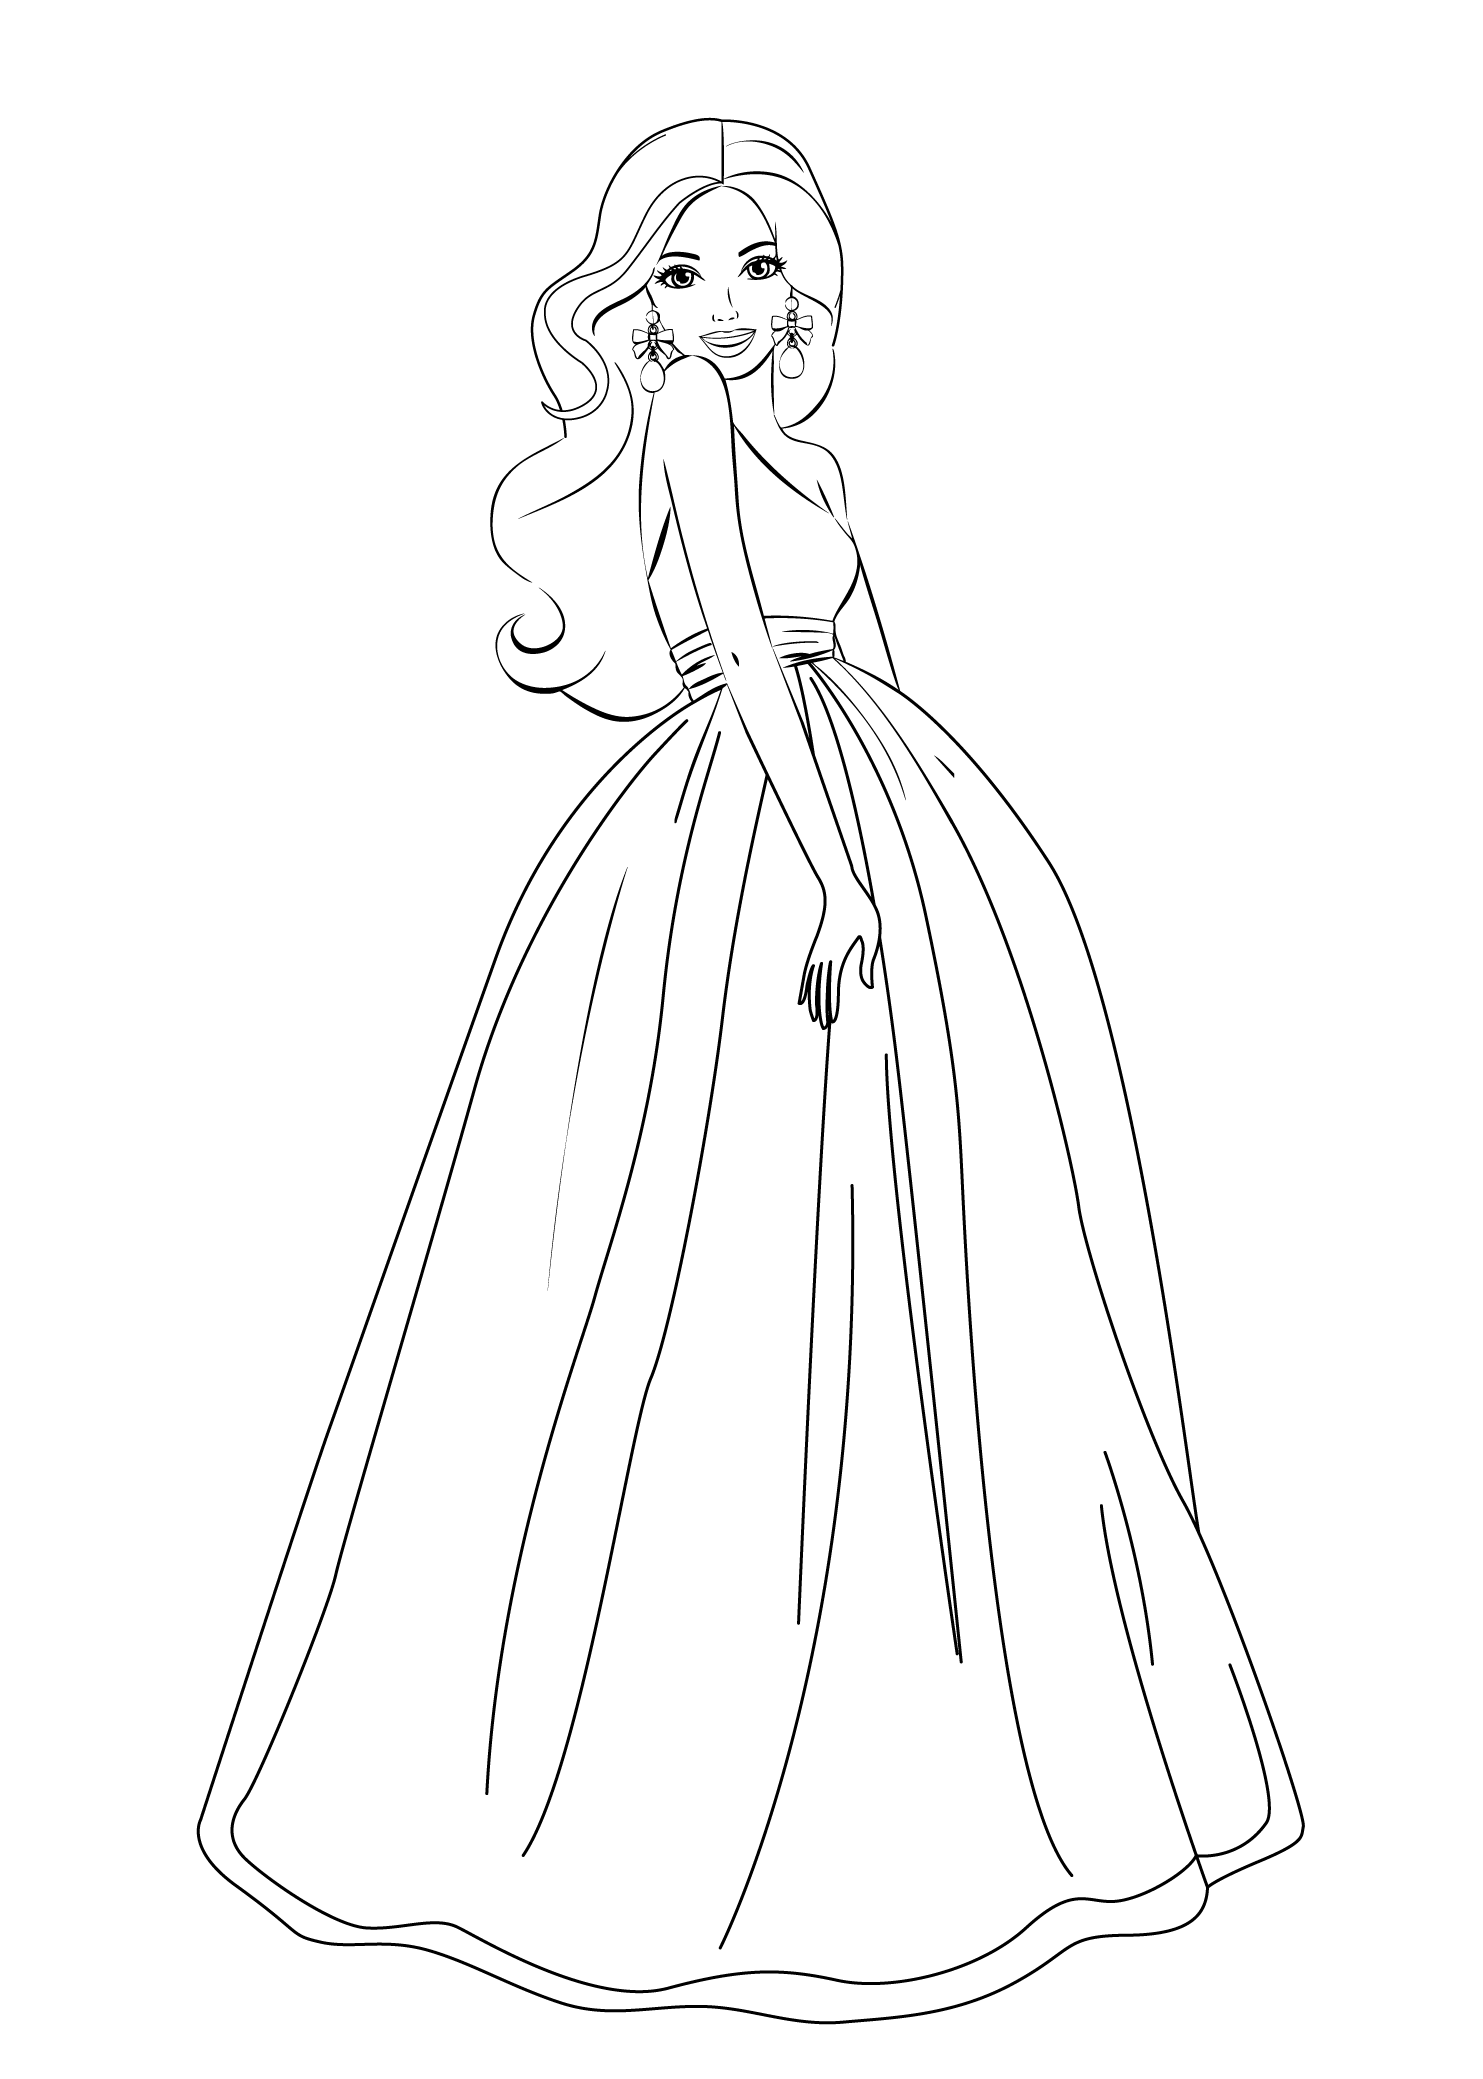 barbie print out coloring pages barbie coloring pages to print for free mermaid princess out barbie pages coloring print